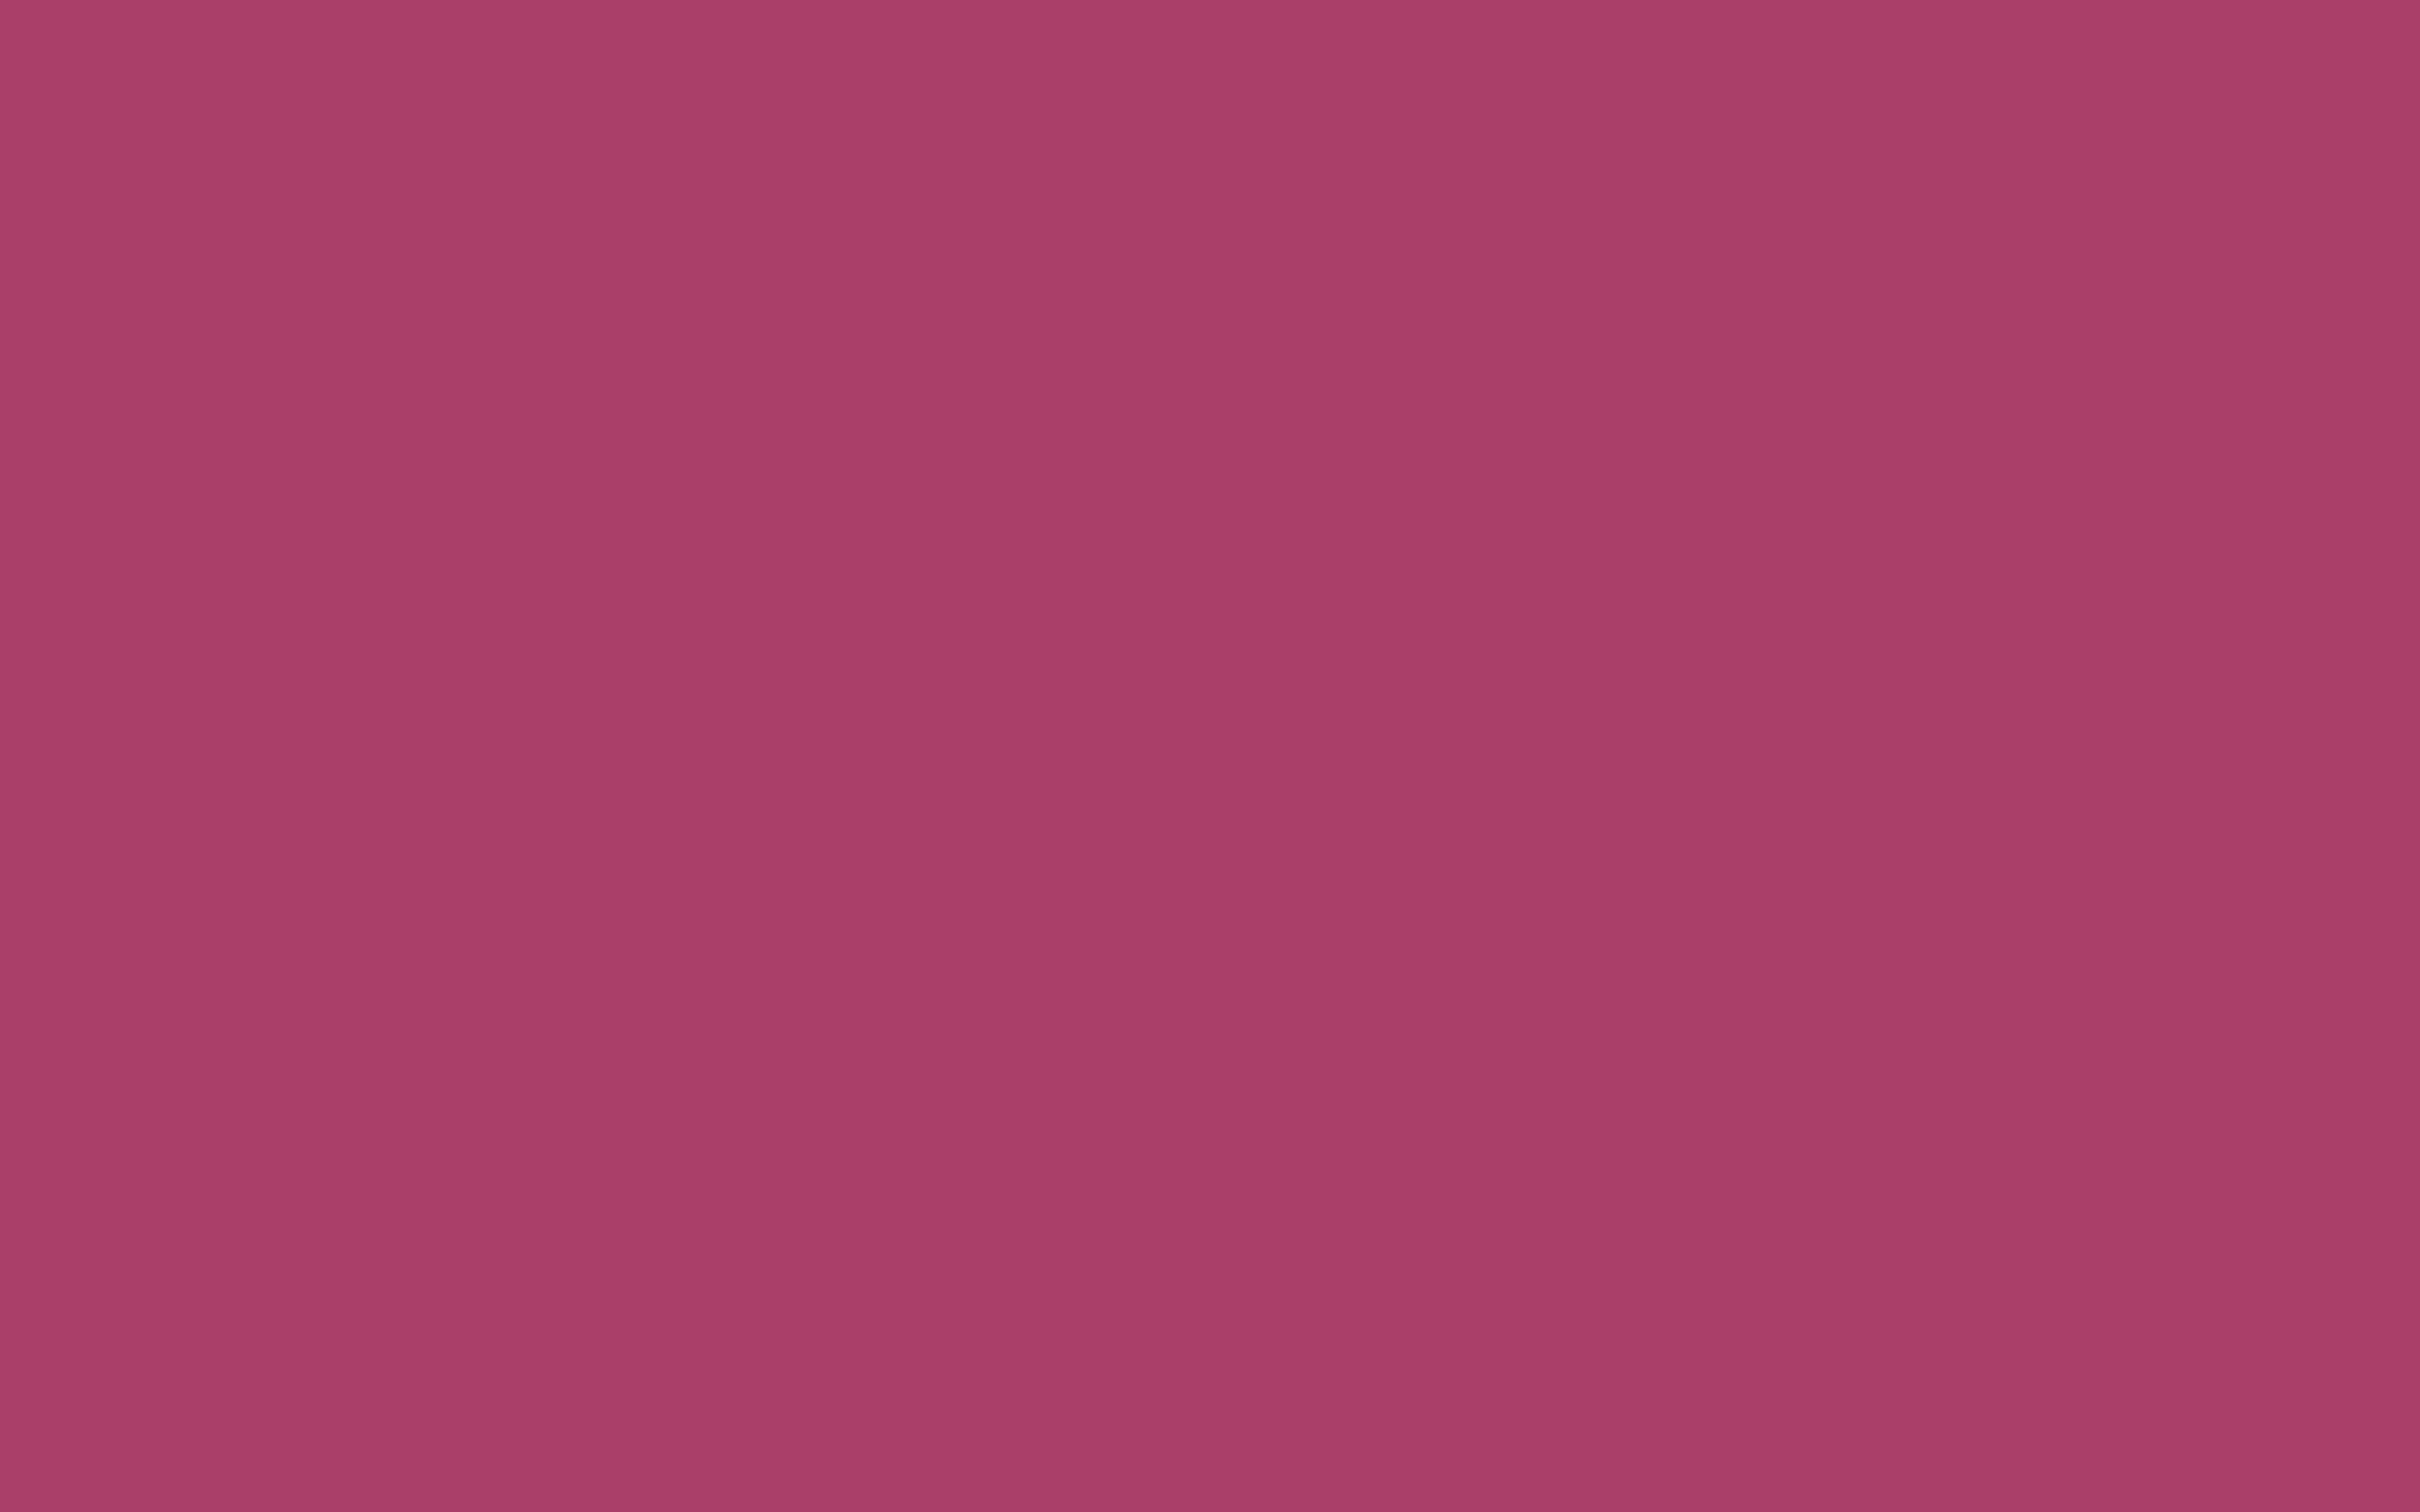 2880x1800 Medium Ruby Solid Color Background